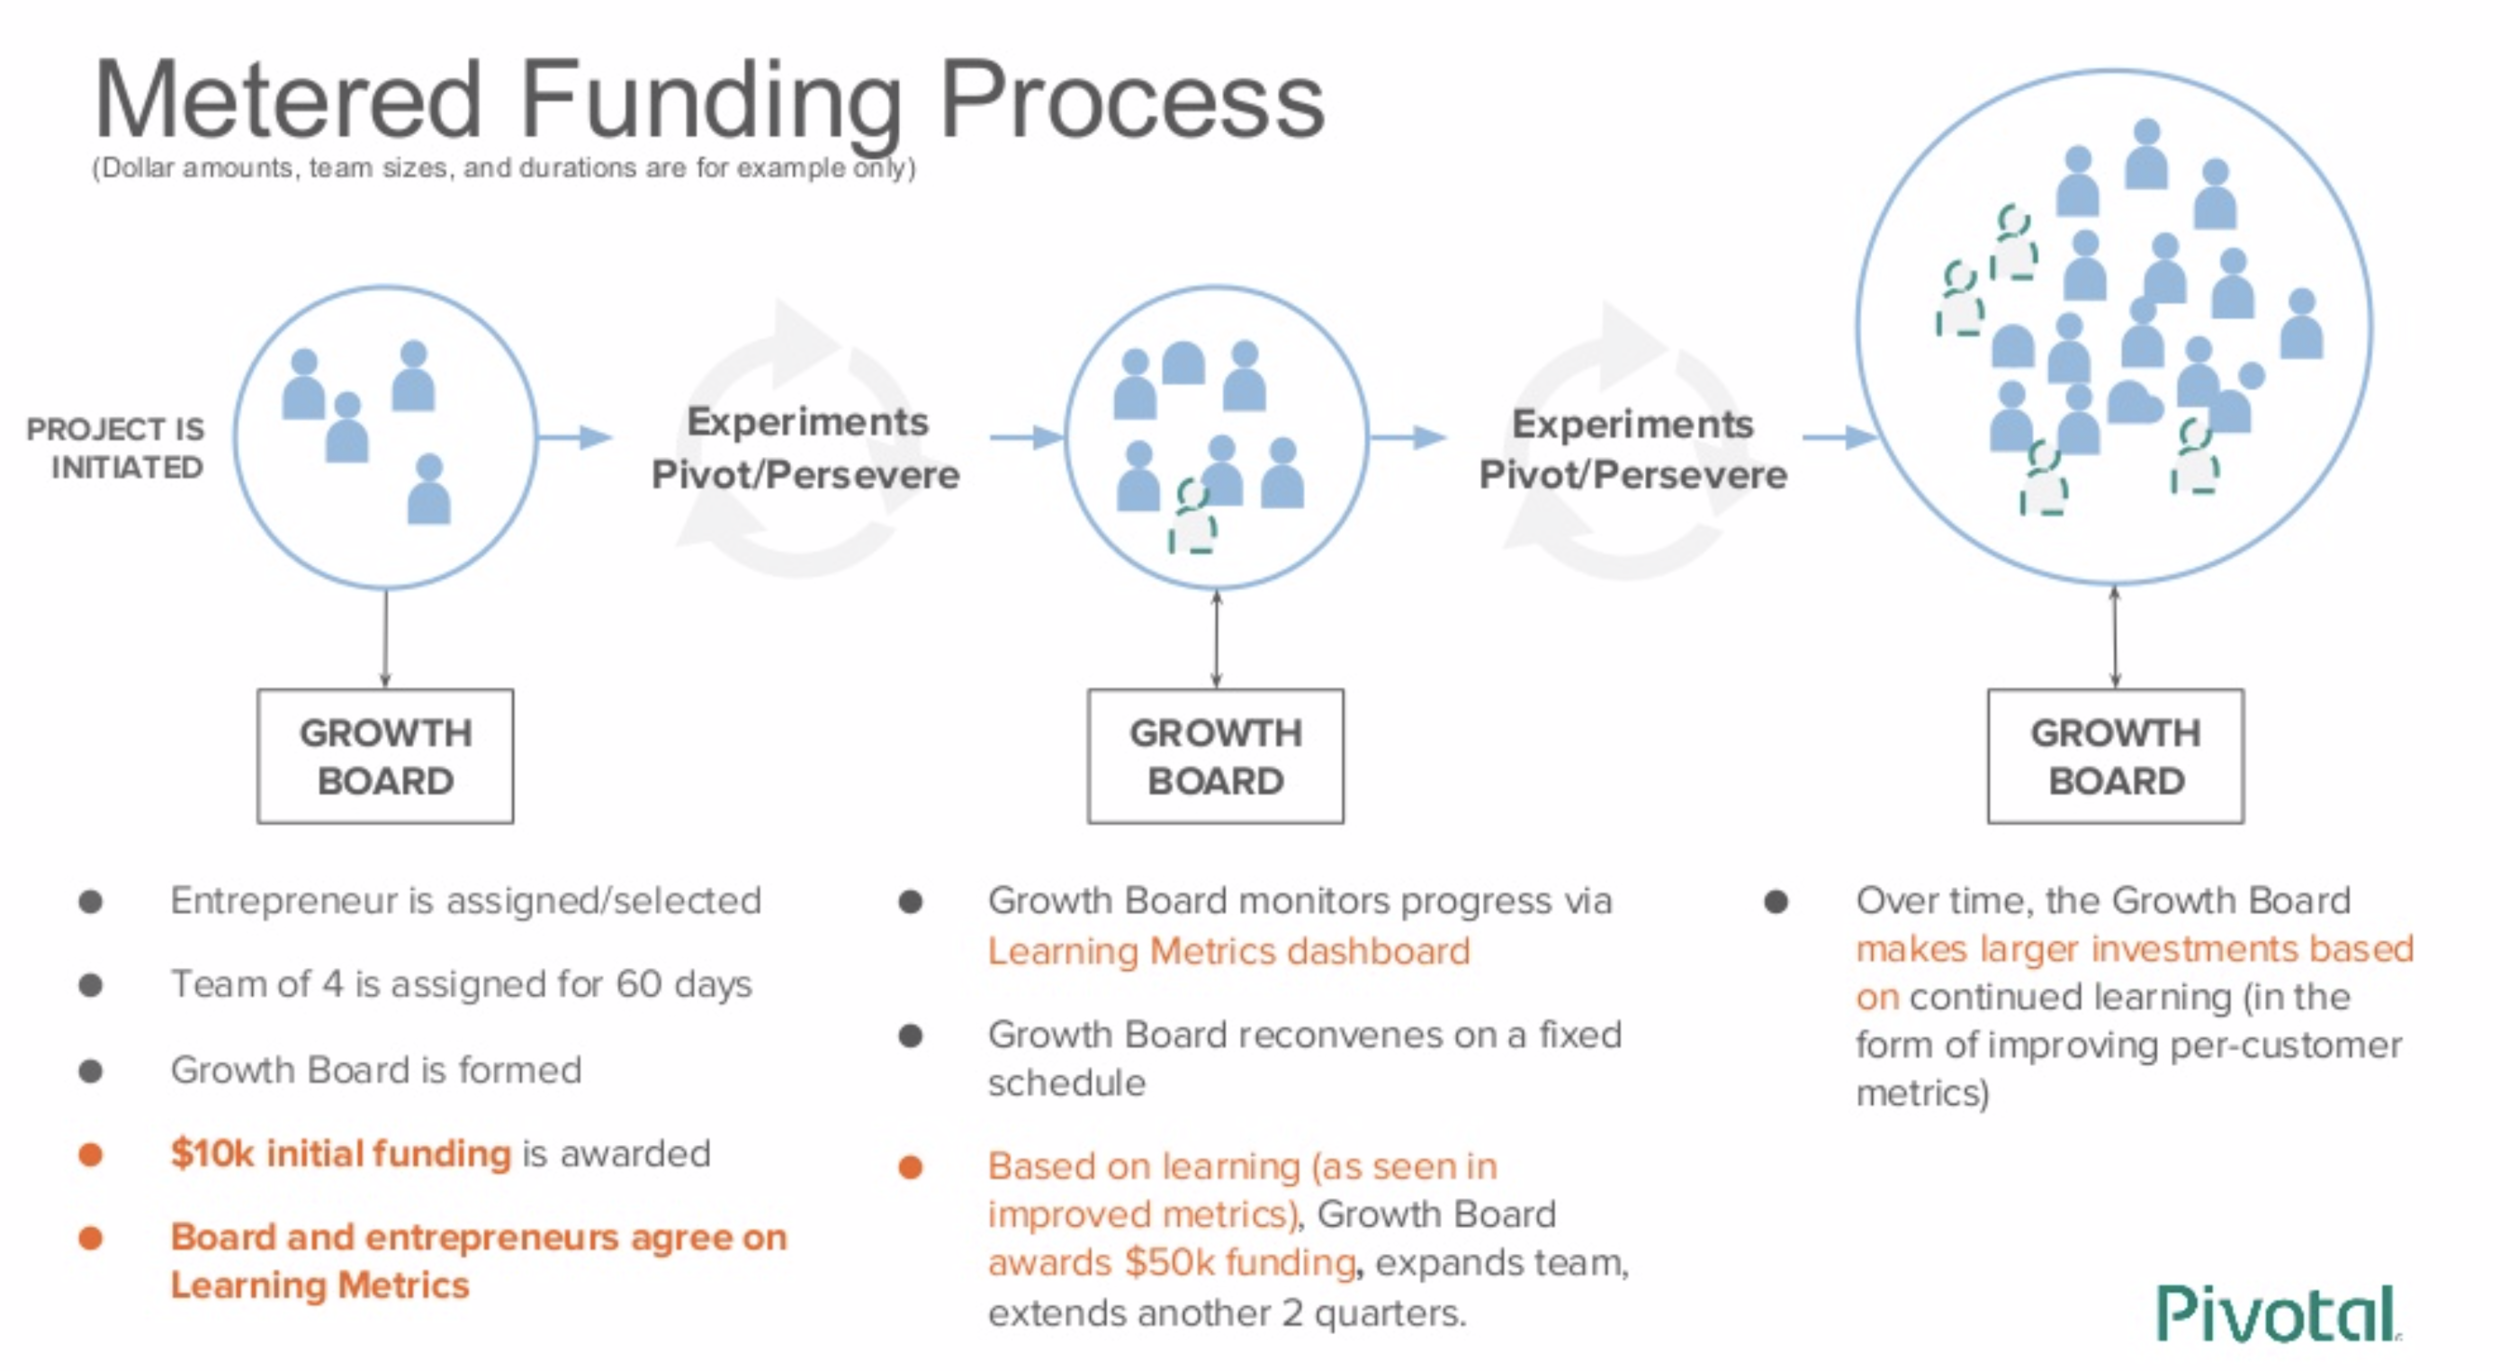 Sample Metered Funding Process - Source: Pivotal